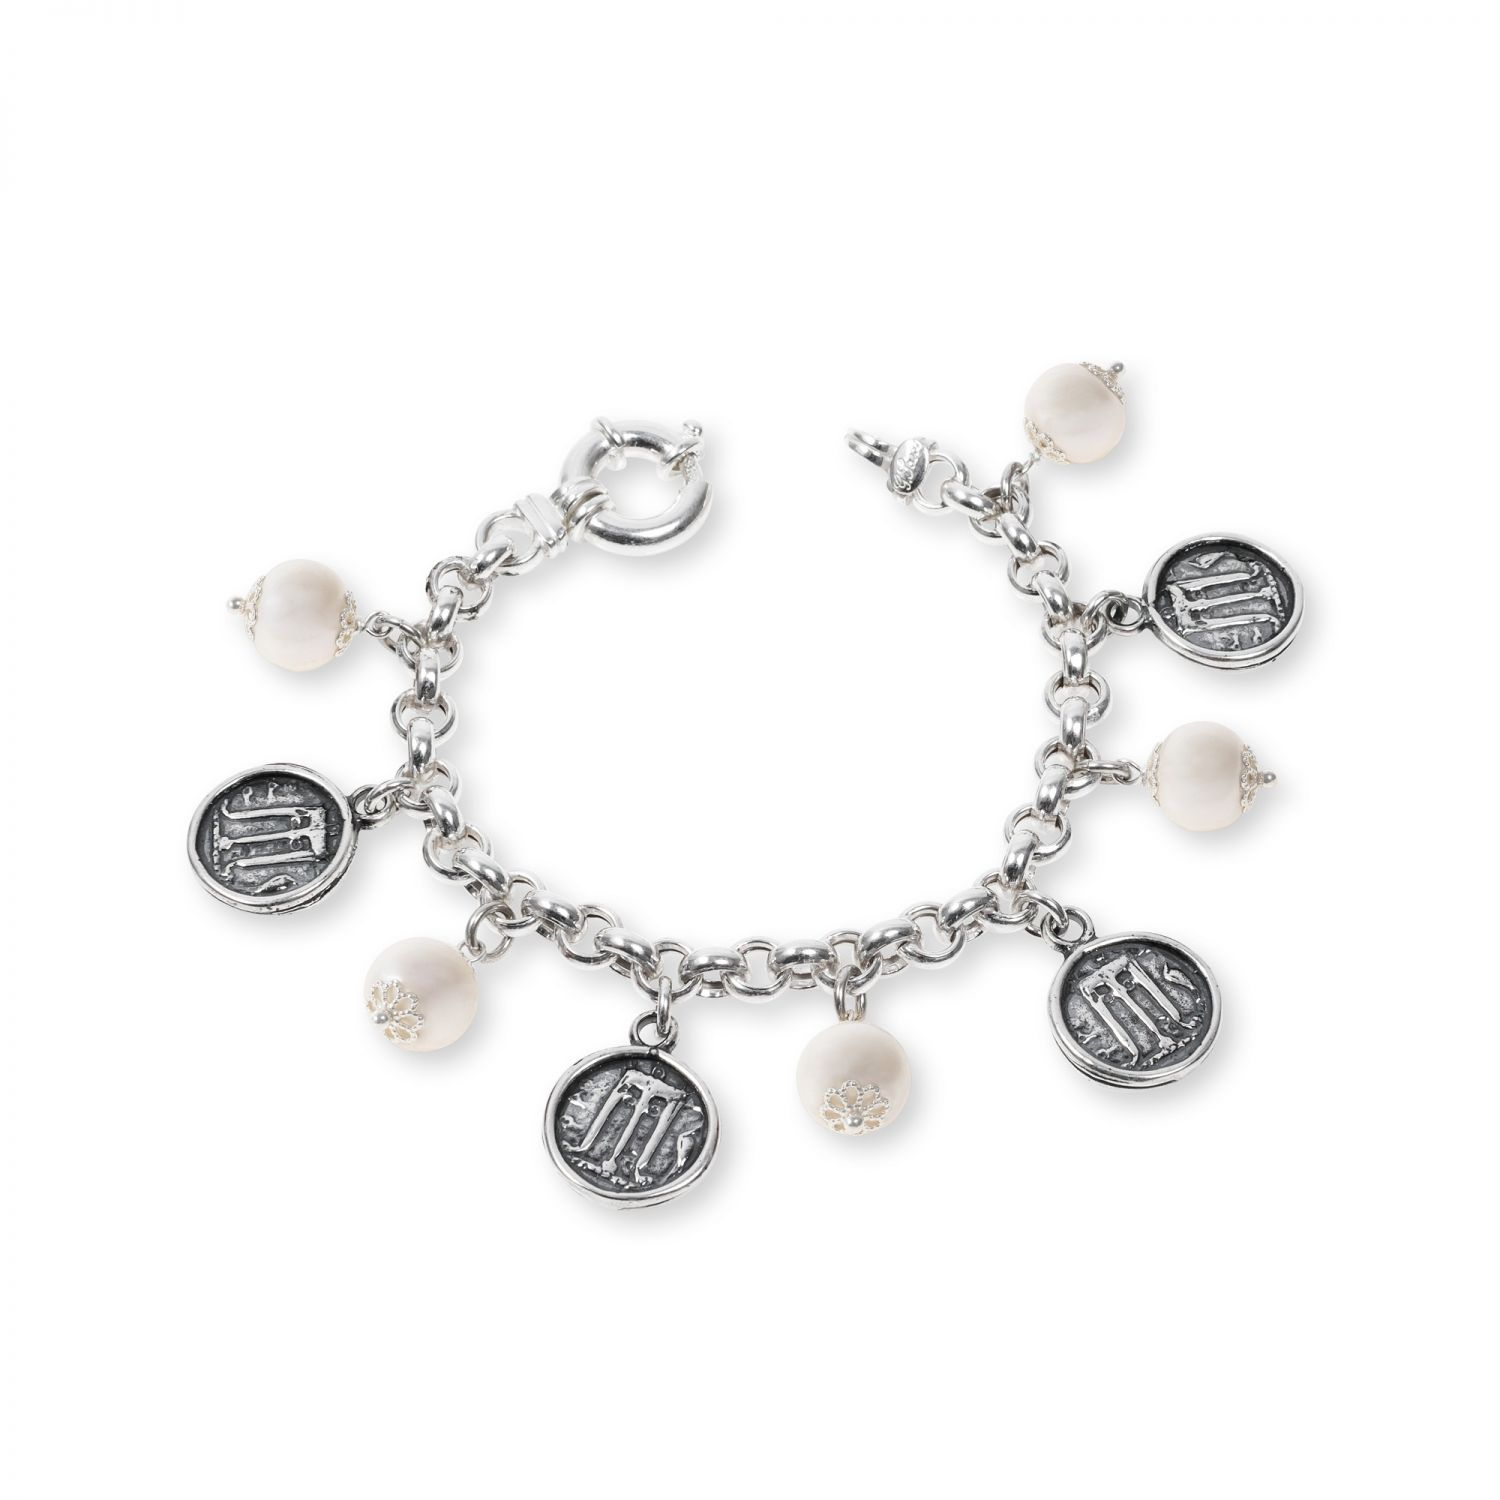 Silver Bracelet with pearls and coins (33132PB)